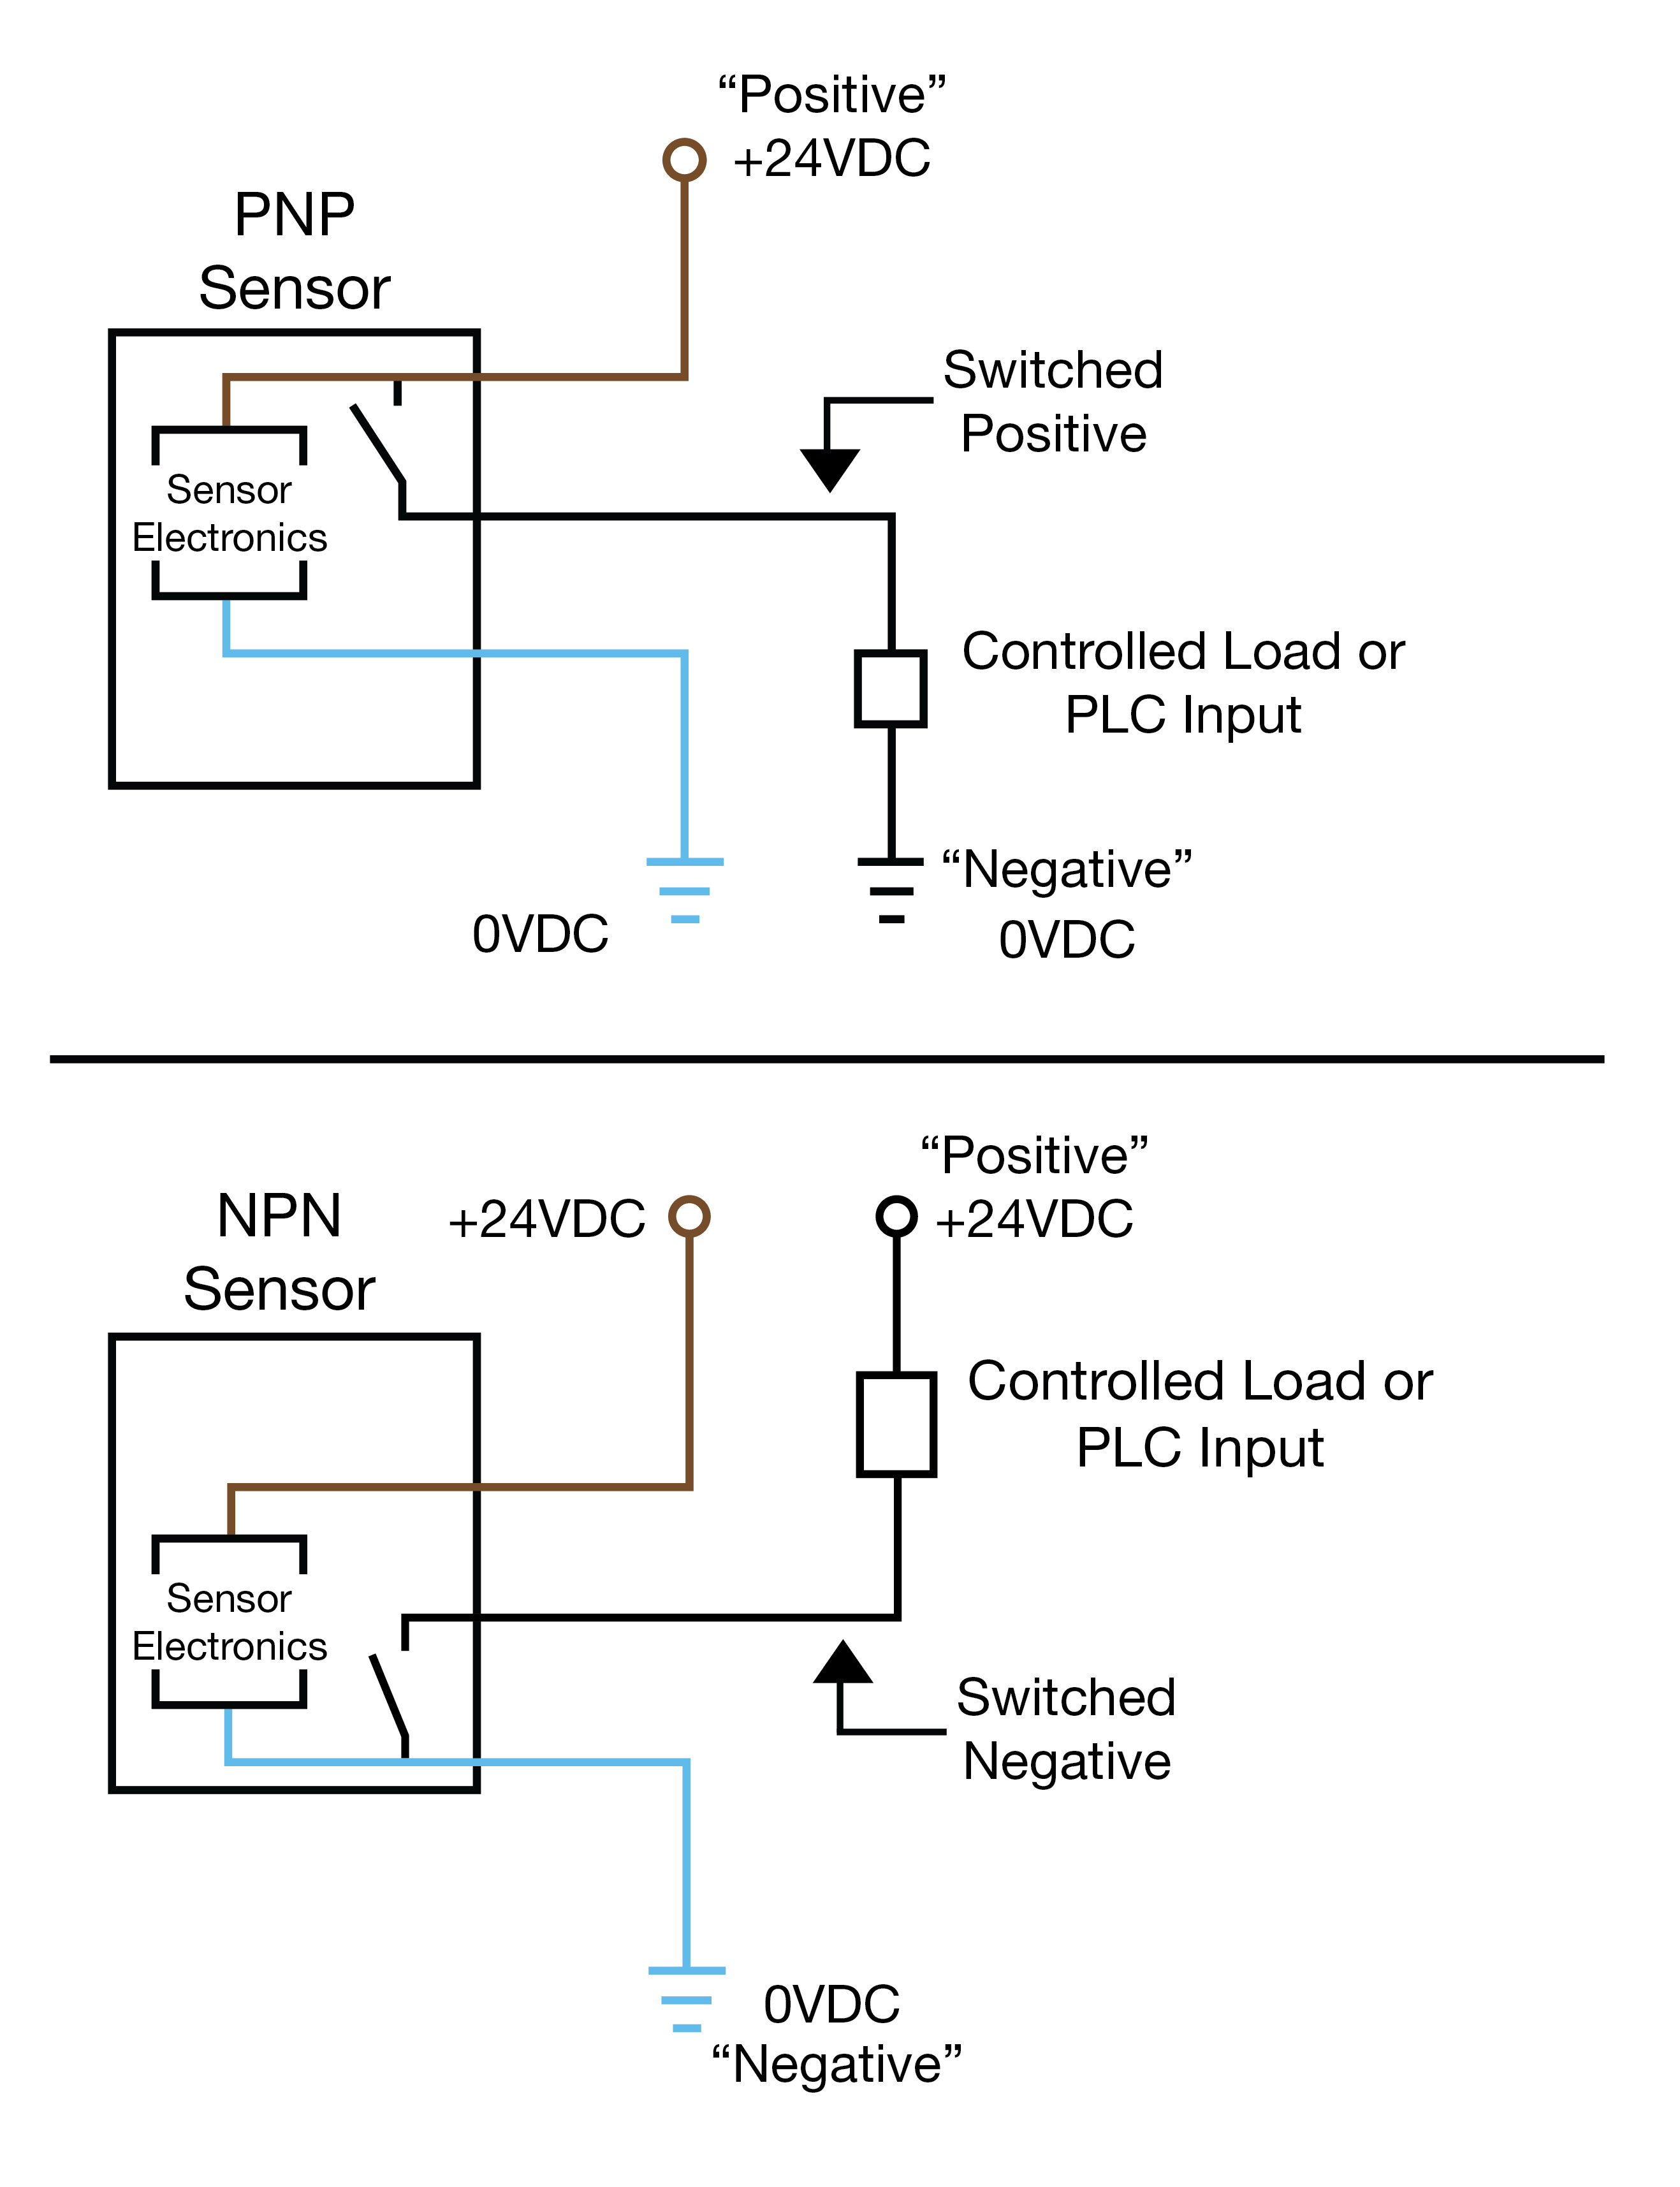 hight resolution of an easy way to remember pnp and npn sensor wiring balluff blog photoelectric switch pnp wiring diagram